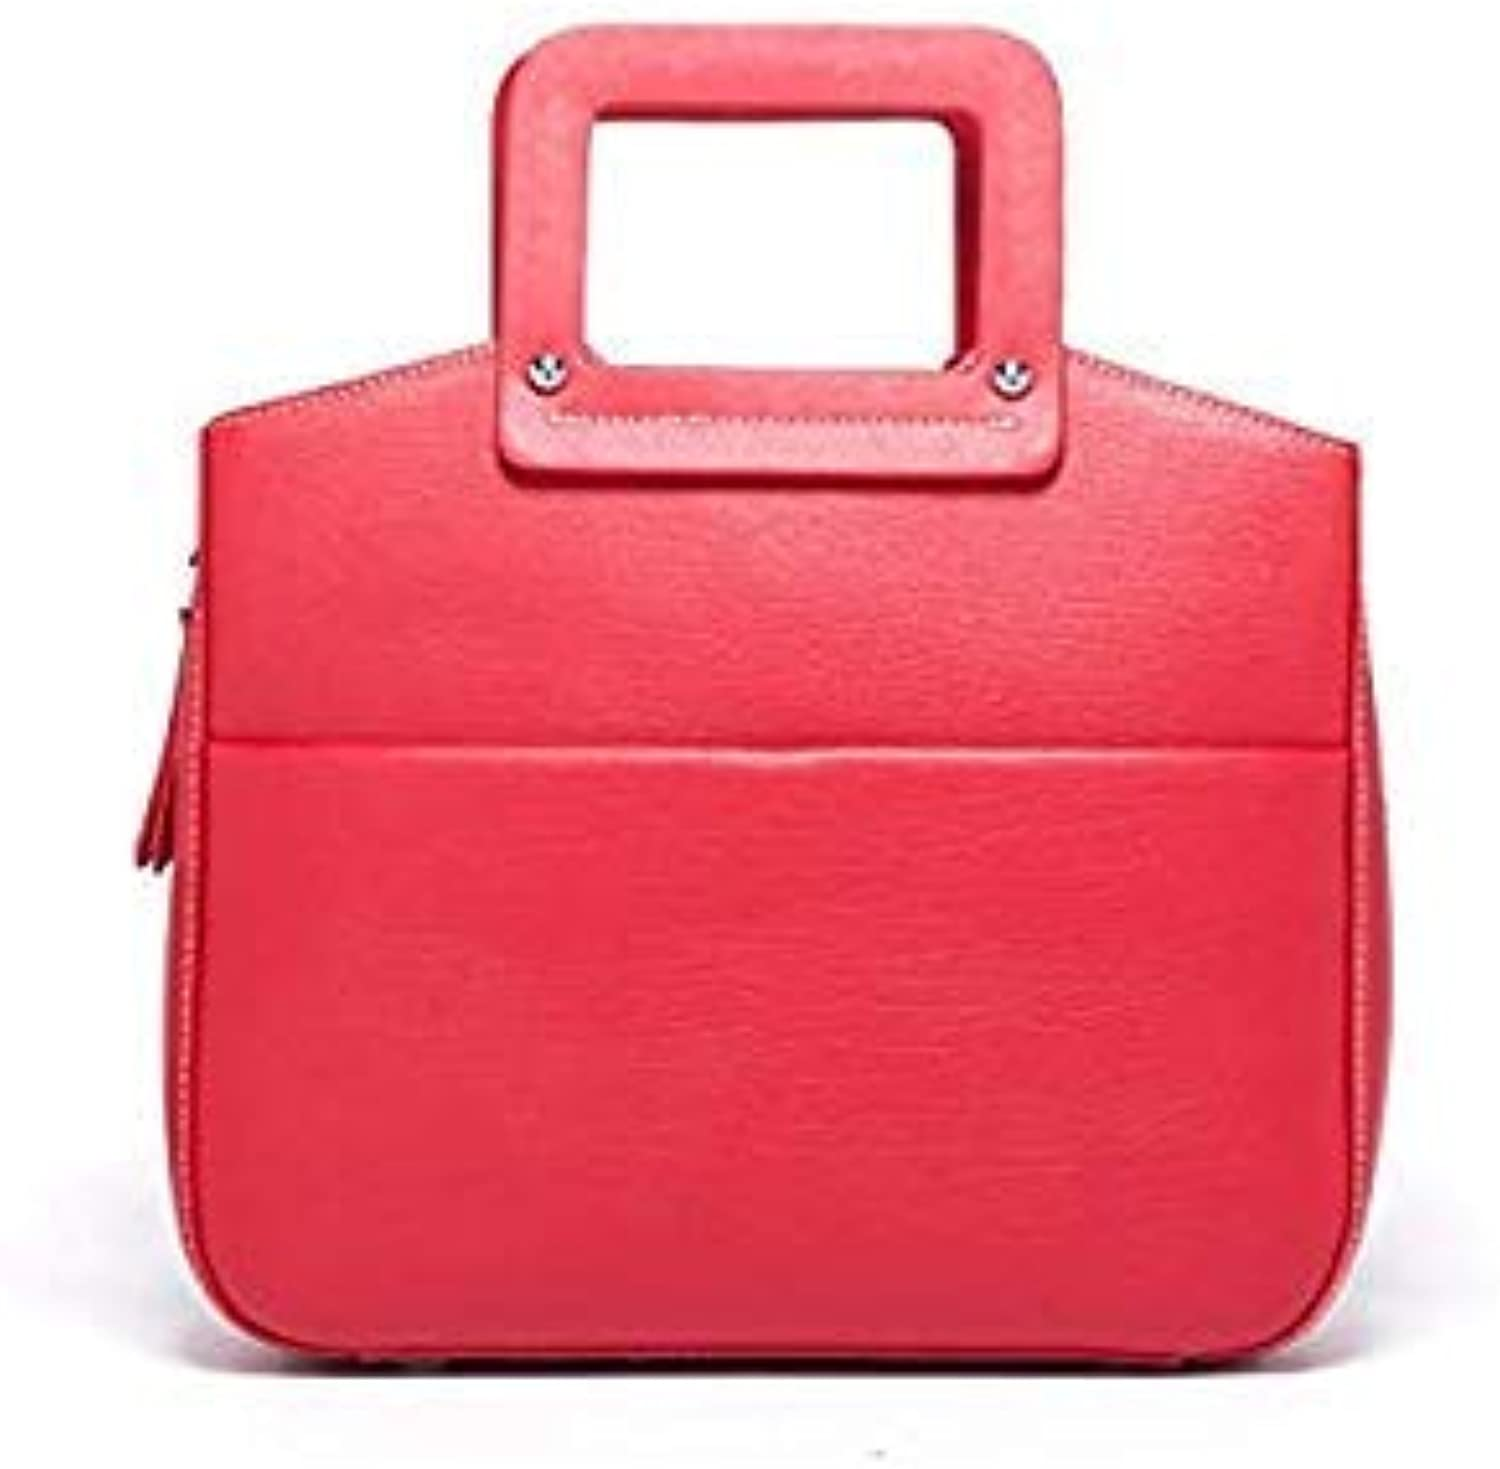 Bloomerang Split Leather Totes Bags for Women Totes Handbags Large Soft Fashion Simple Messenger Bags for Female Handbags Lady Dames Tassen color red